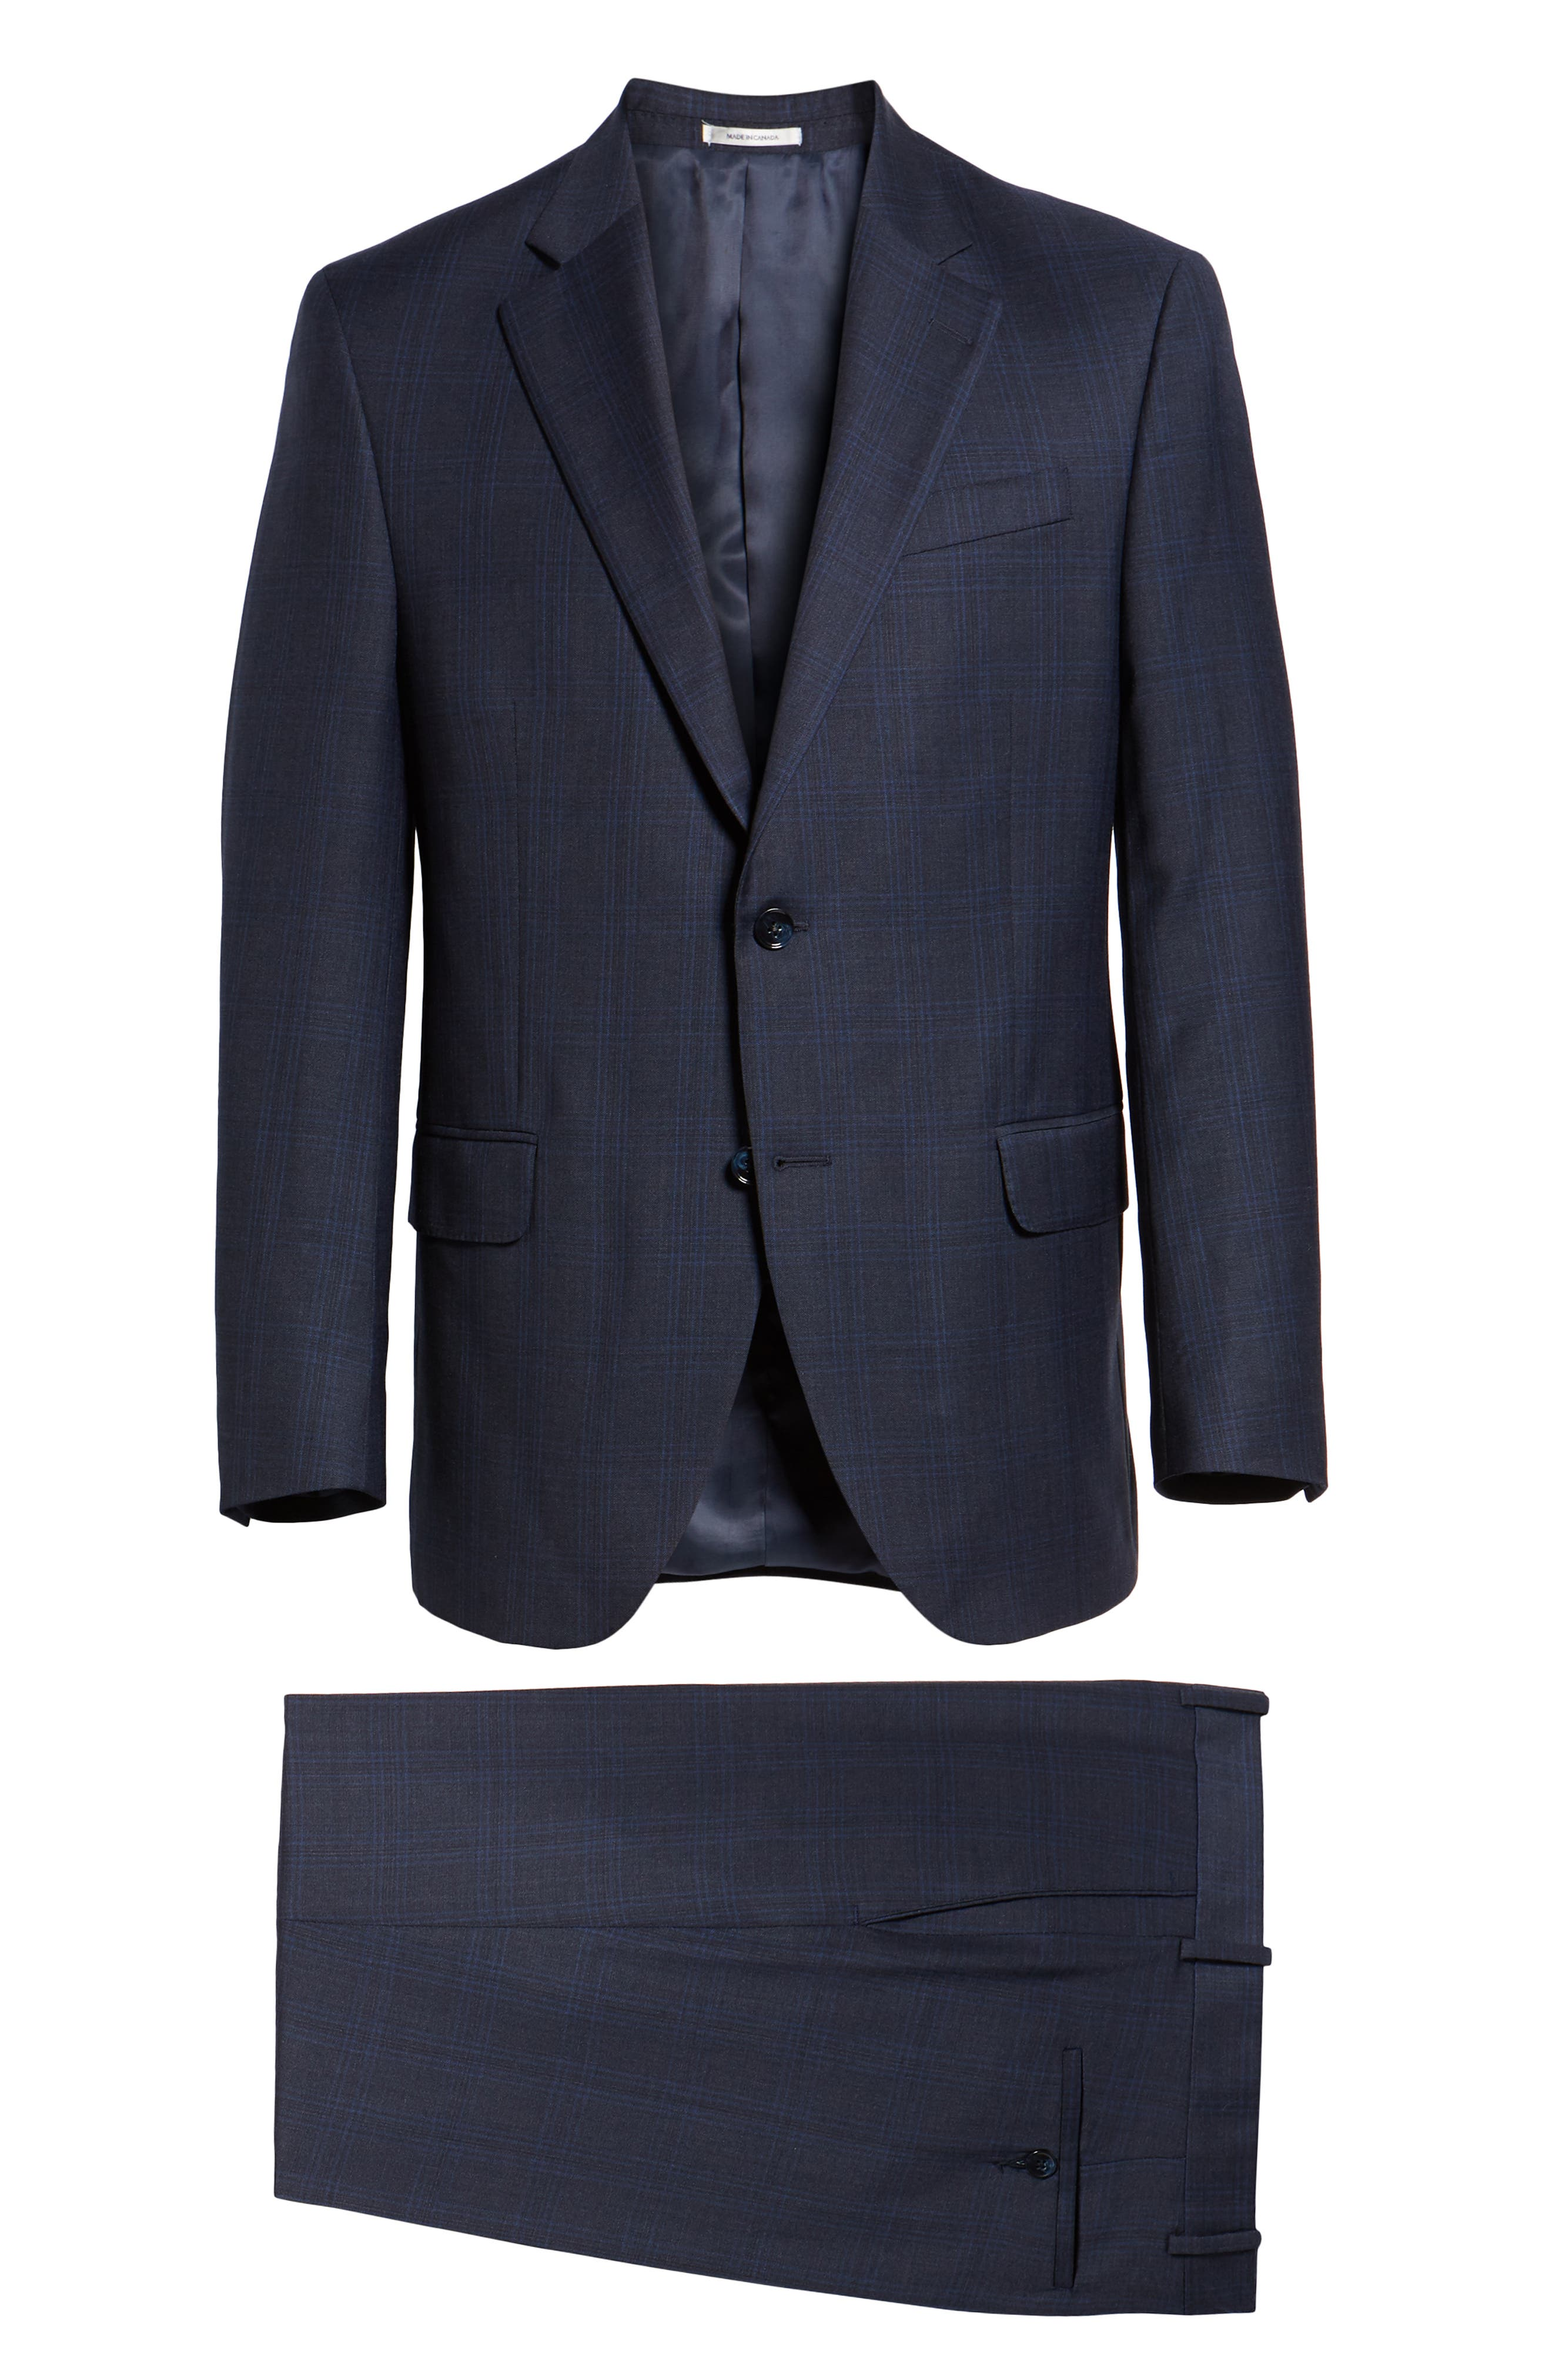 Flynn Classic Fit Plaid Wool Suit,                             Alternate thumbnail 8, color,                             NAVY